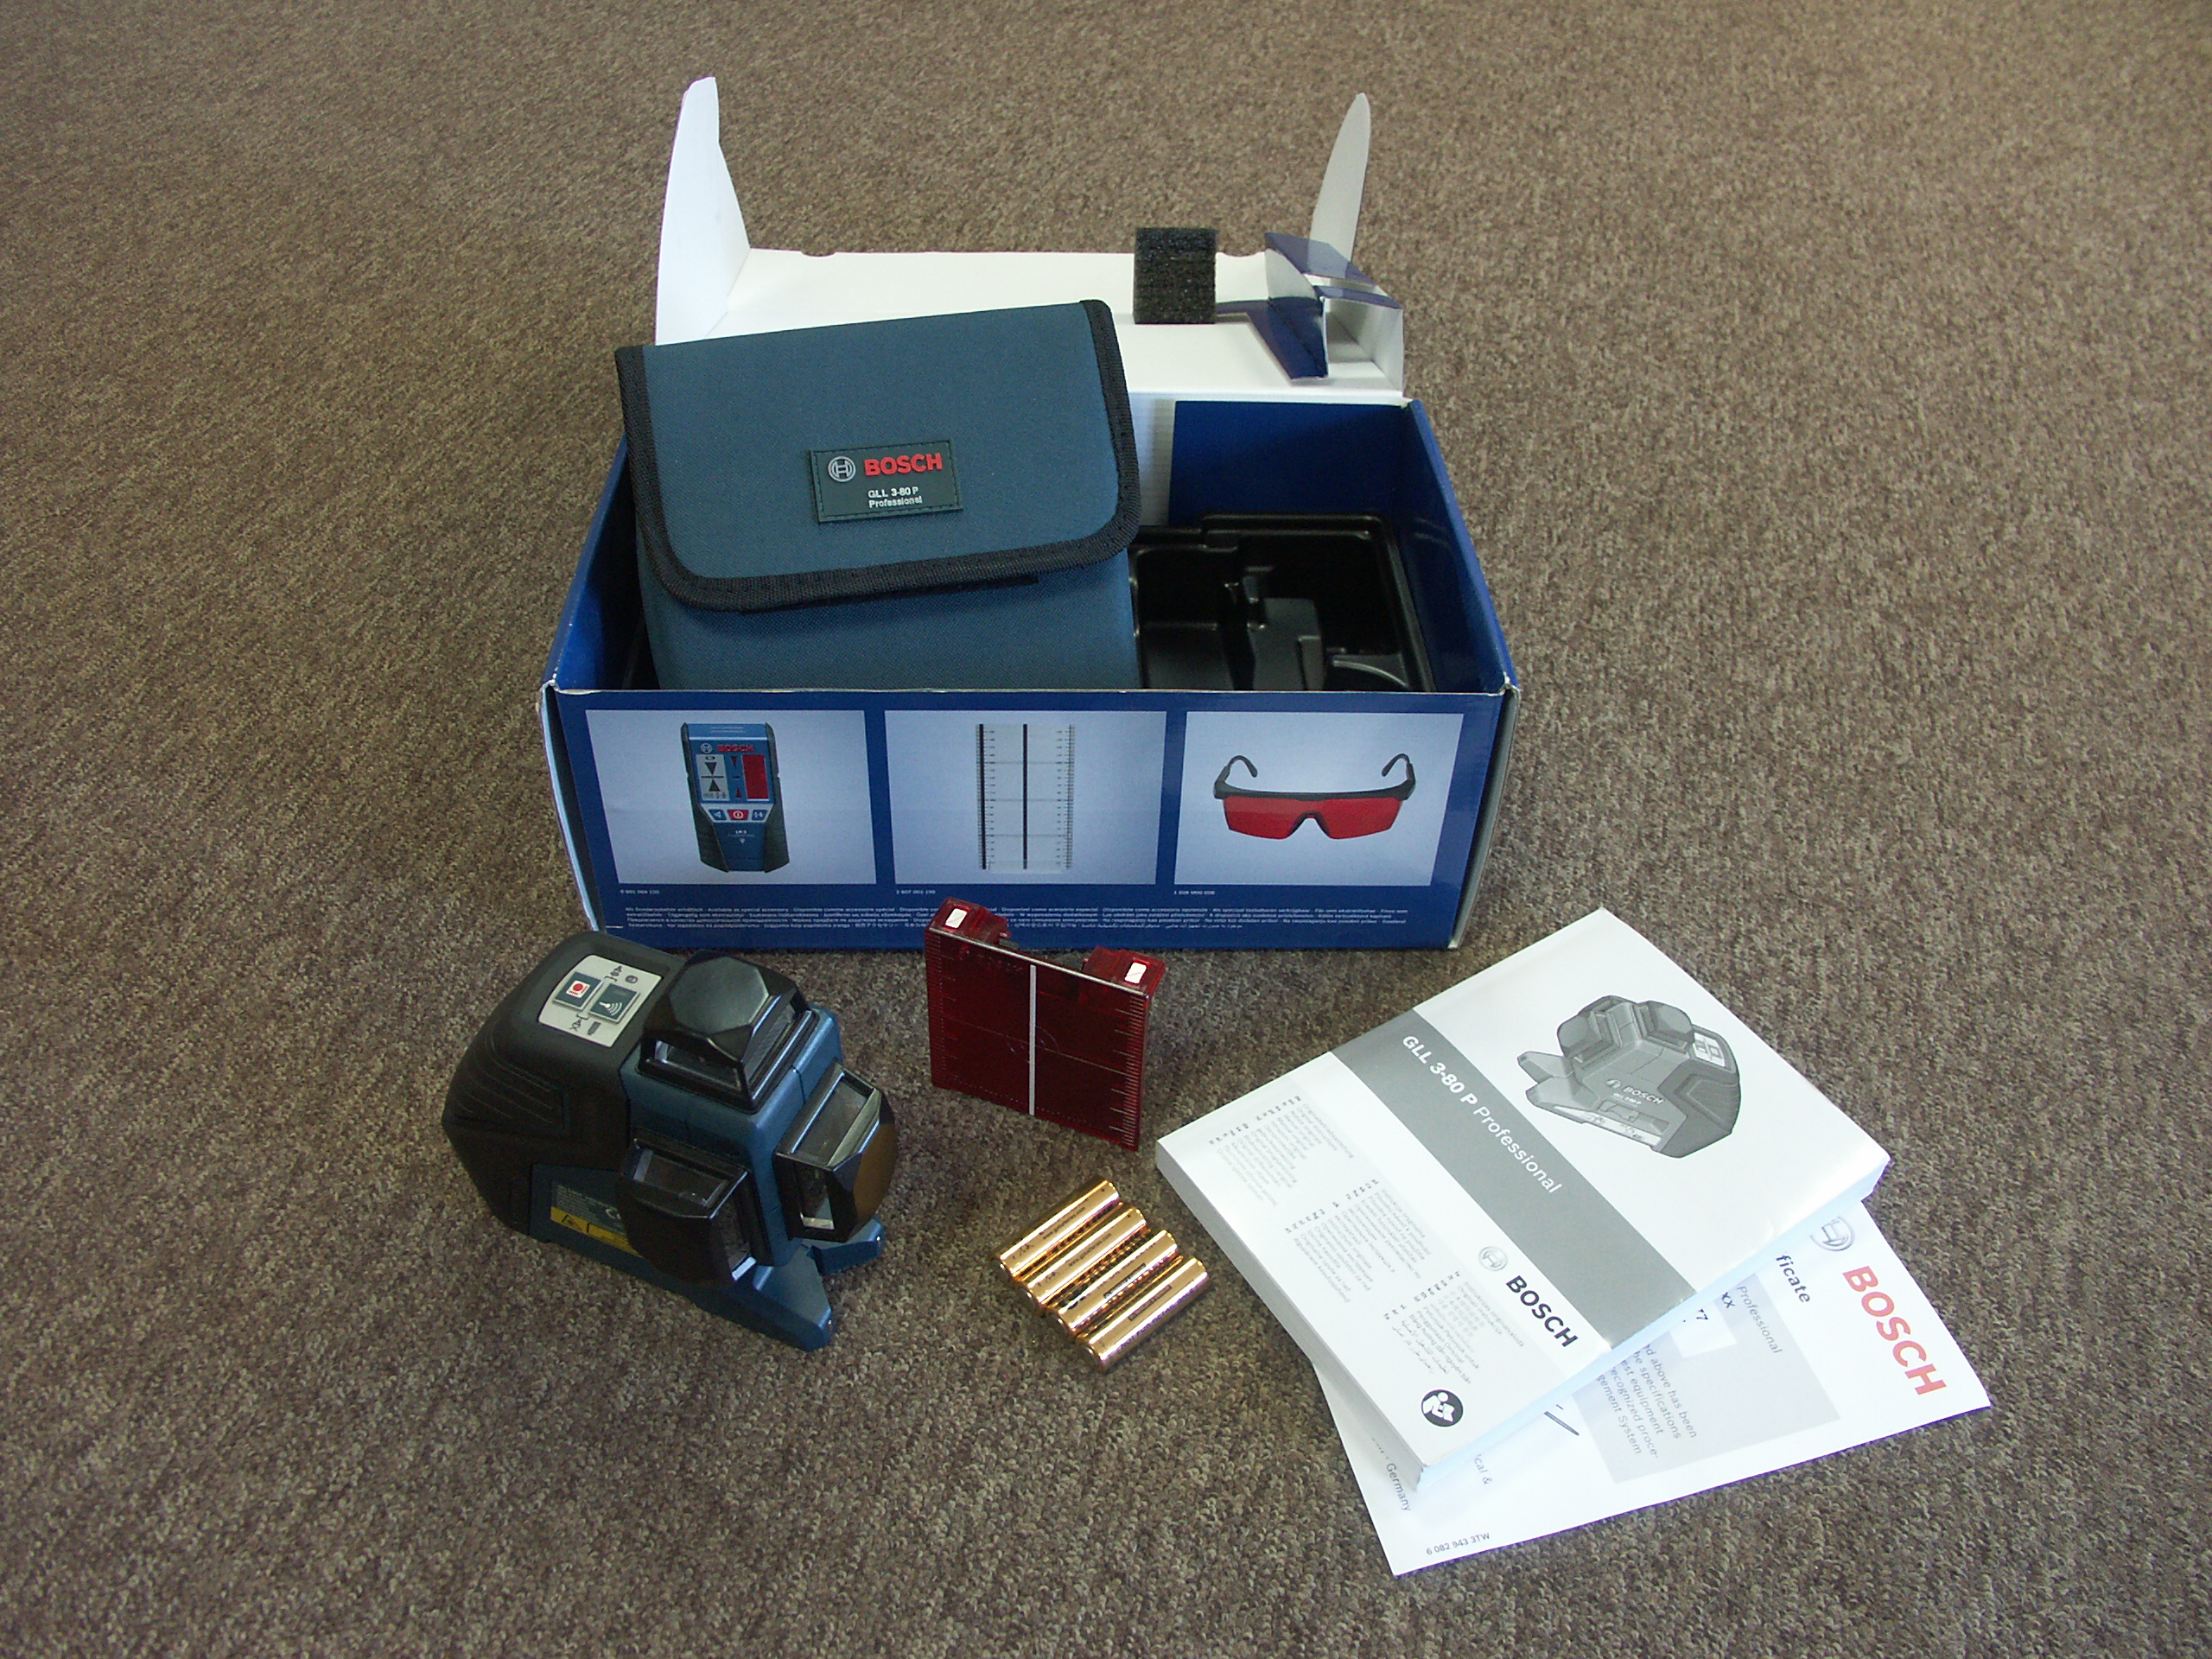 5299f48008974f At ADA 6D MAXLINER one option configuration packaged in a cardboard box  with colorful photographs and brief characteristics. Inside the box is a  square ...